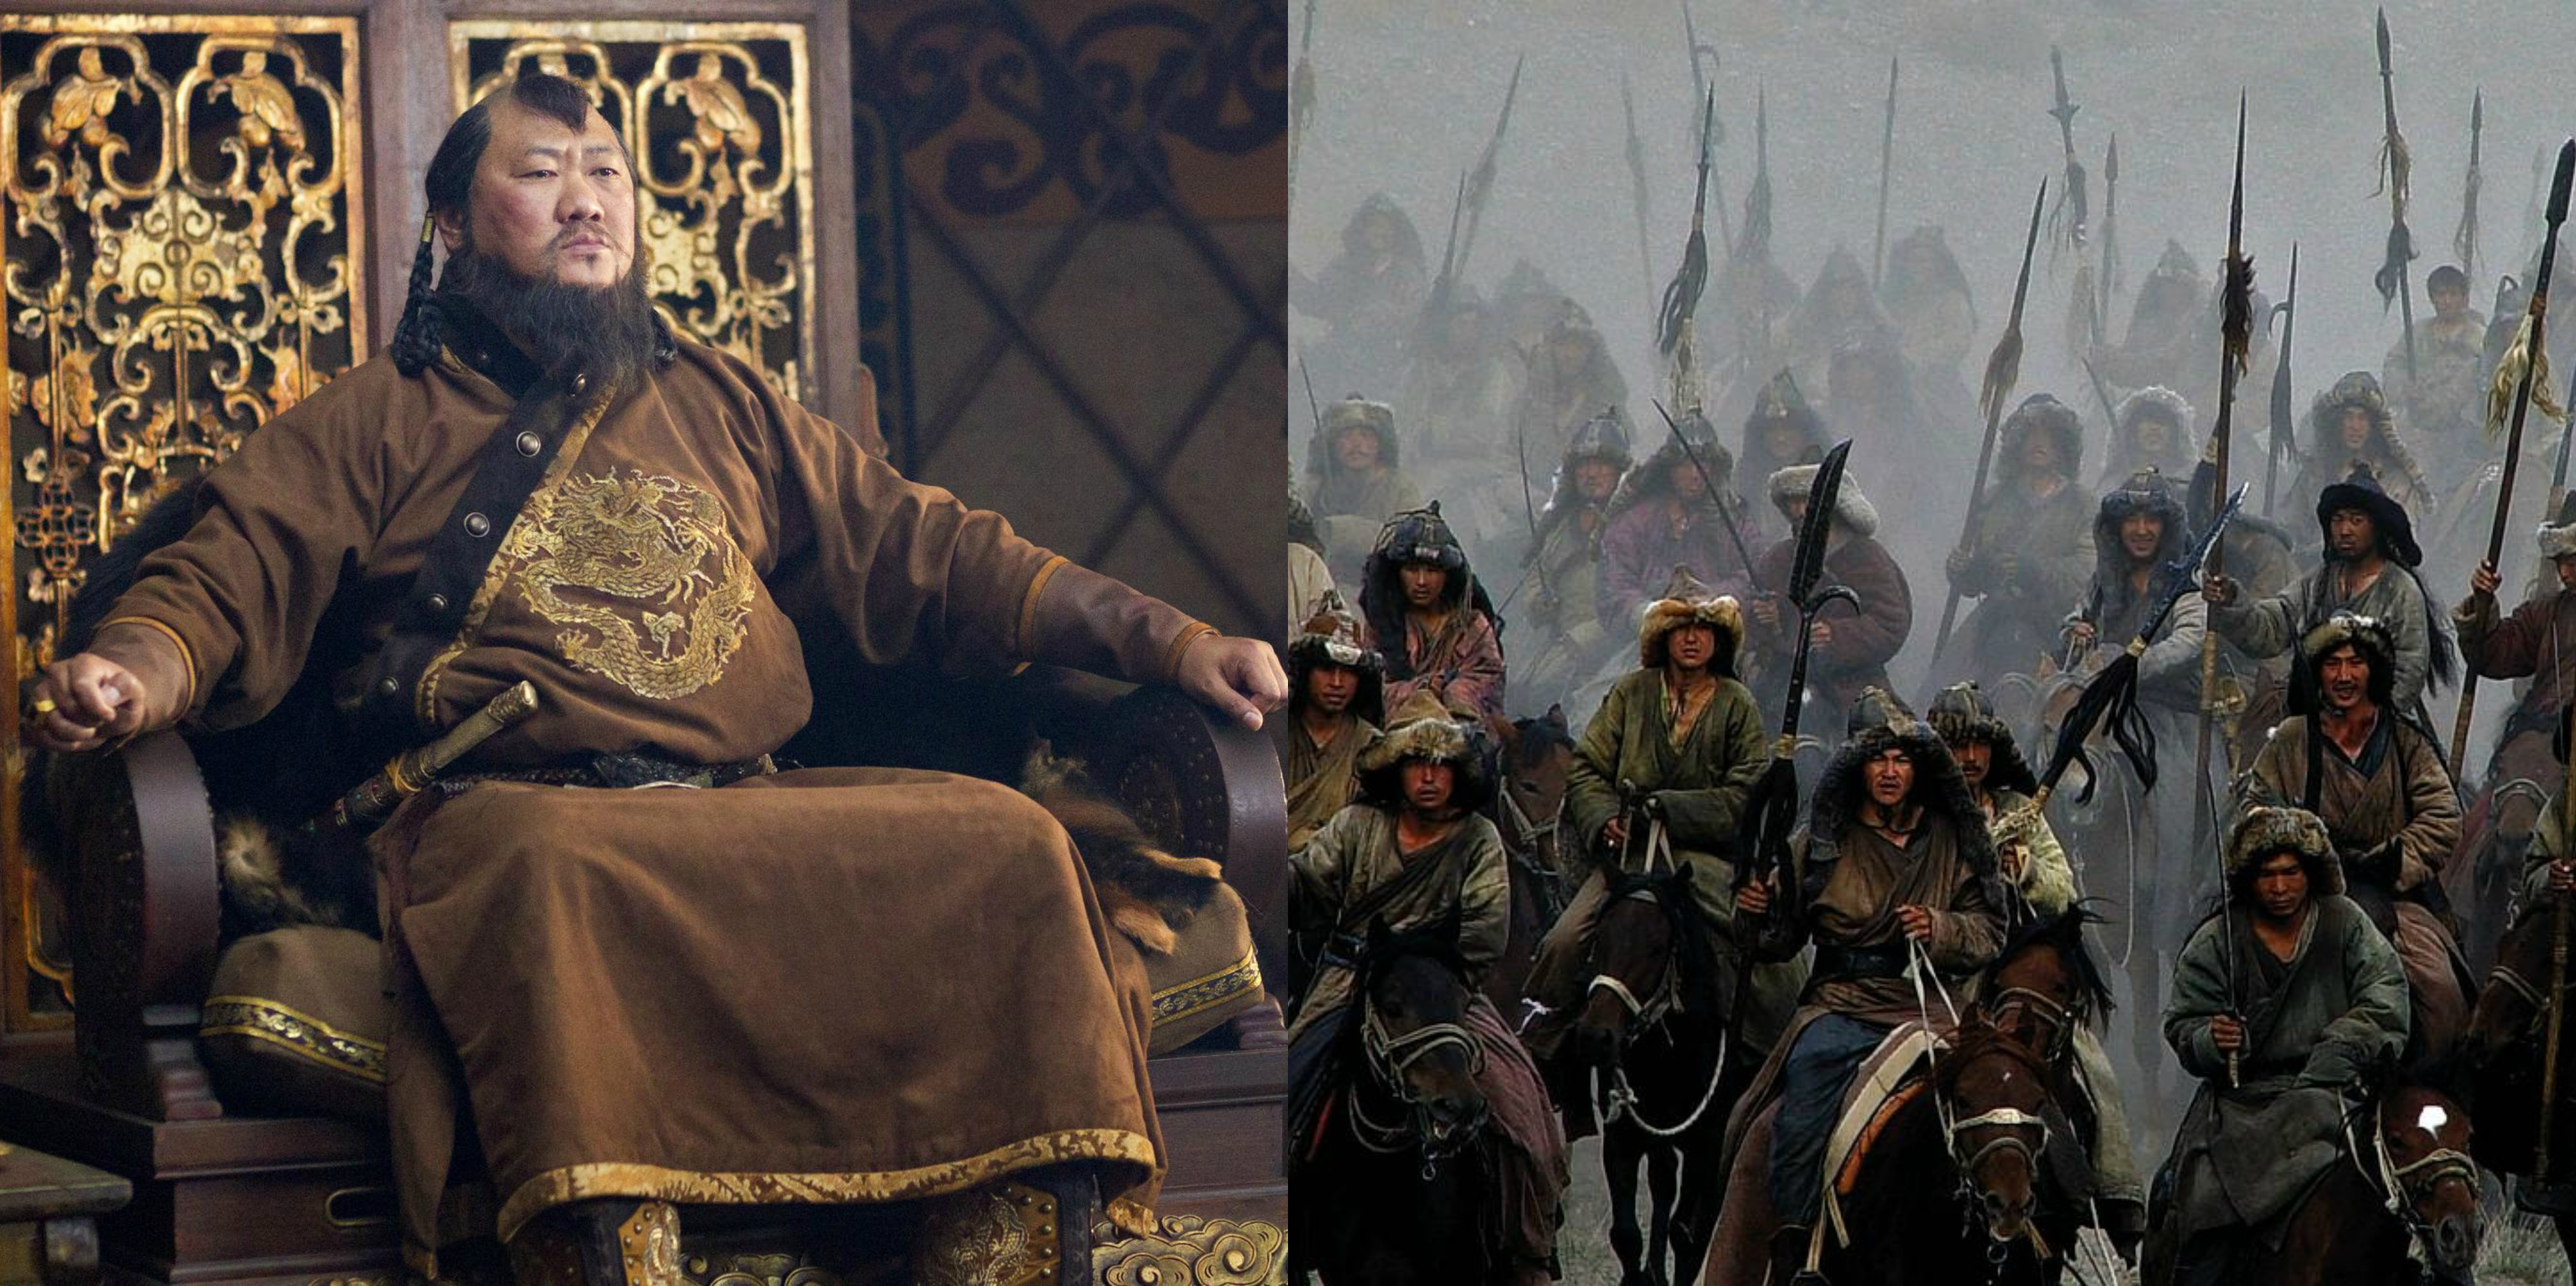 the life of the legendary mogul genghis khan Genghis khan or temüjin borjigin (/ ˈ ɡ ɛ ŋ ɡ ɪ s ˈ k ɑː n, ˈ dʒ ɛ ŋ-/ mongolian: чингис хаан, çingis hán [t͡ʃʰiŋɡɪs xaːŋ] ( listen)) (also transliterated as chinggis khaan born temüjin, c 1162 – august 18, 1227) was the founder and first great khan of the mongol empire, which became the largest contiguous empire in history after his death.